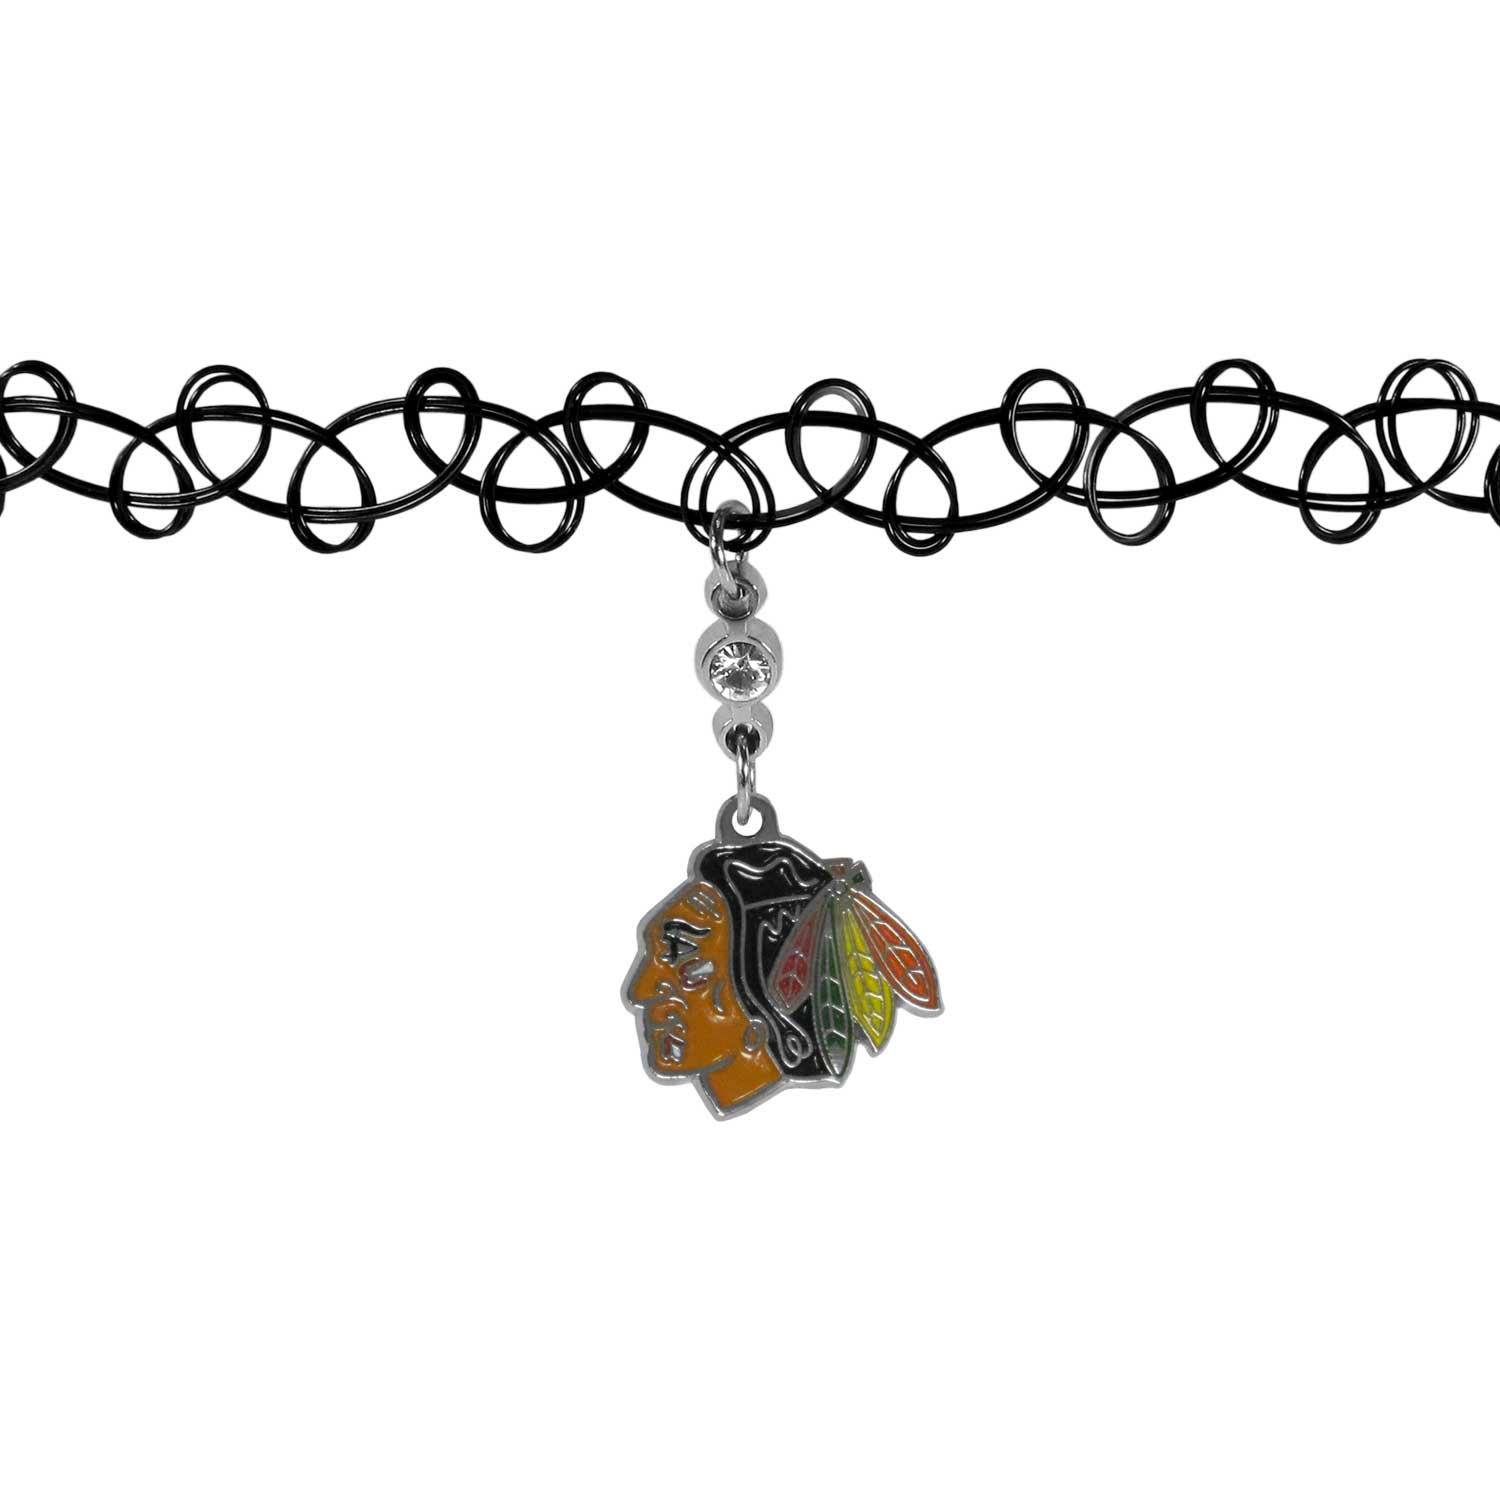 Chicago Blackhawks® Knotted Choker - This retro, knotted choker is a cool and unique piece of fan jewelry. The tattoo style choker features a high polish Chicago Blackhawks® charm with rhinestone accents.